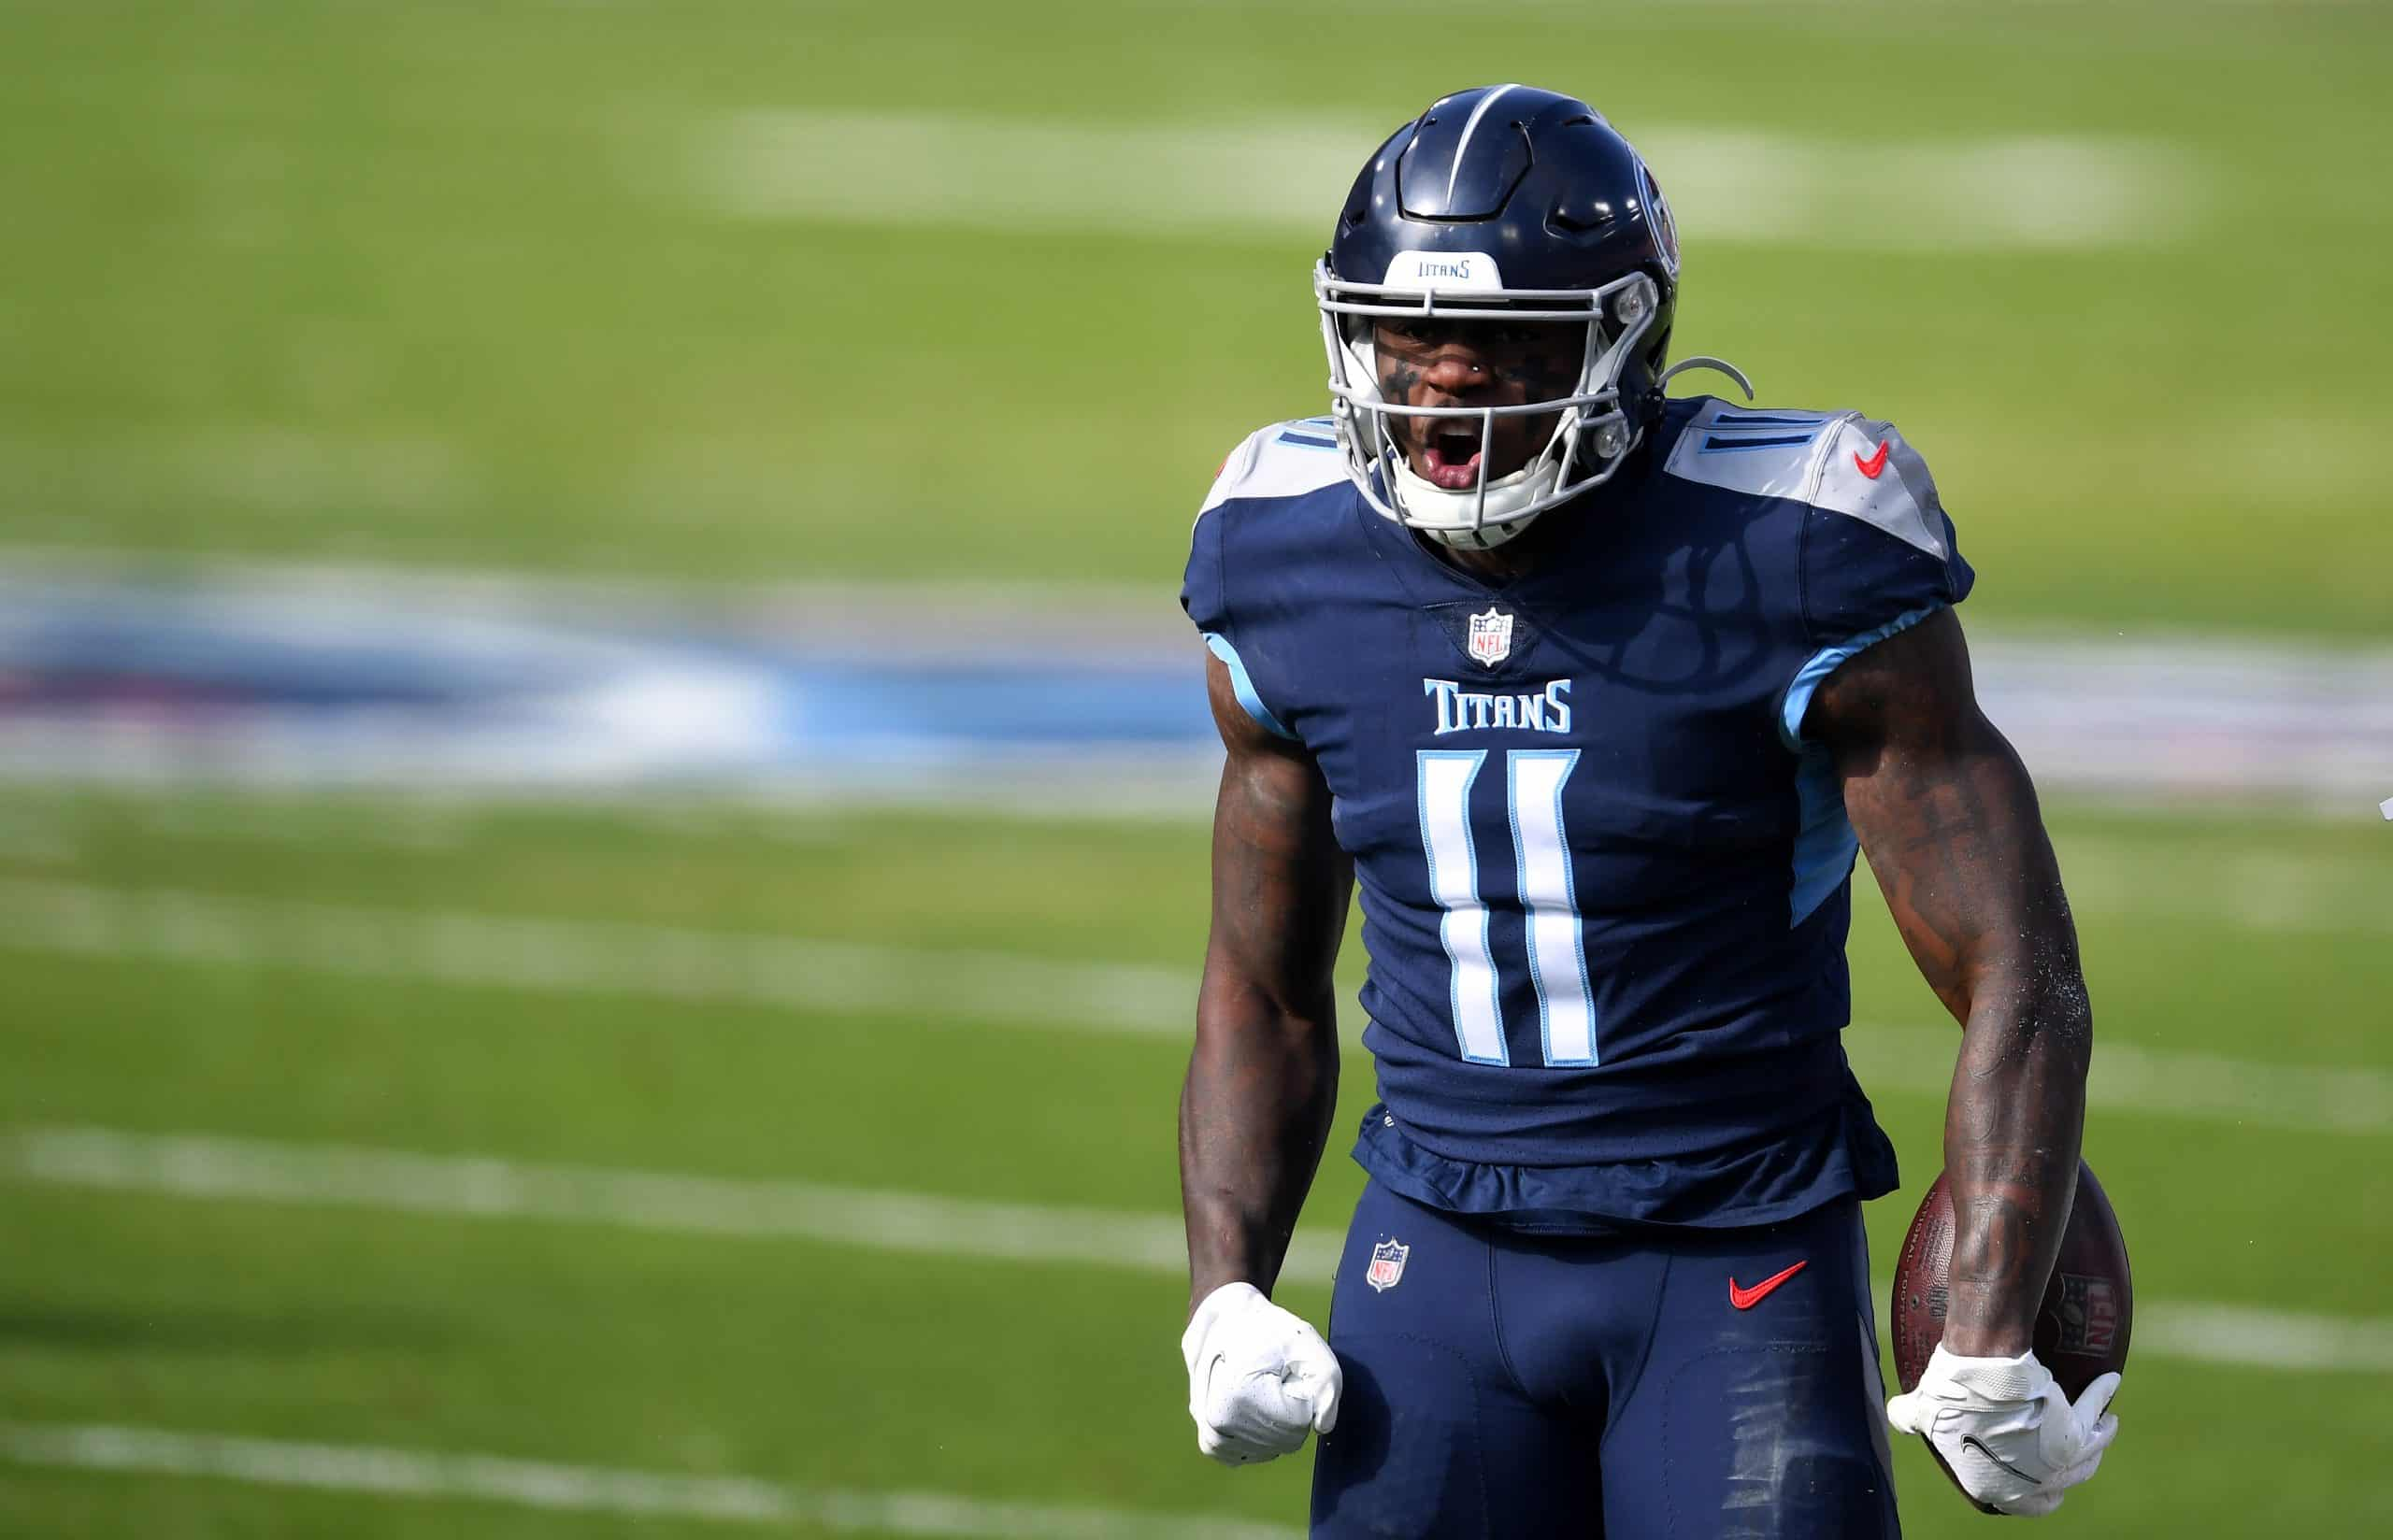 Top Dynasty WR Rankings for the 2021 NFL season